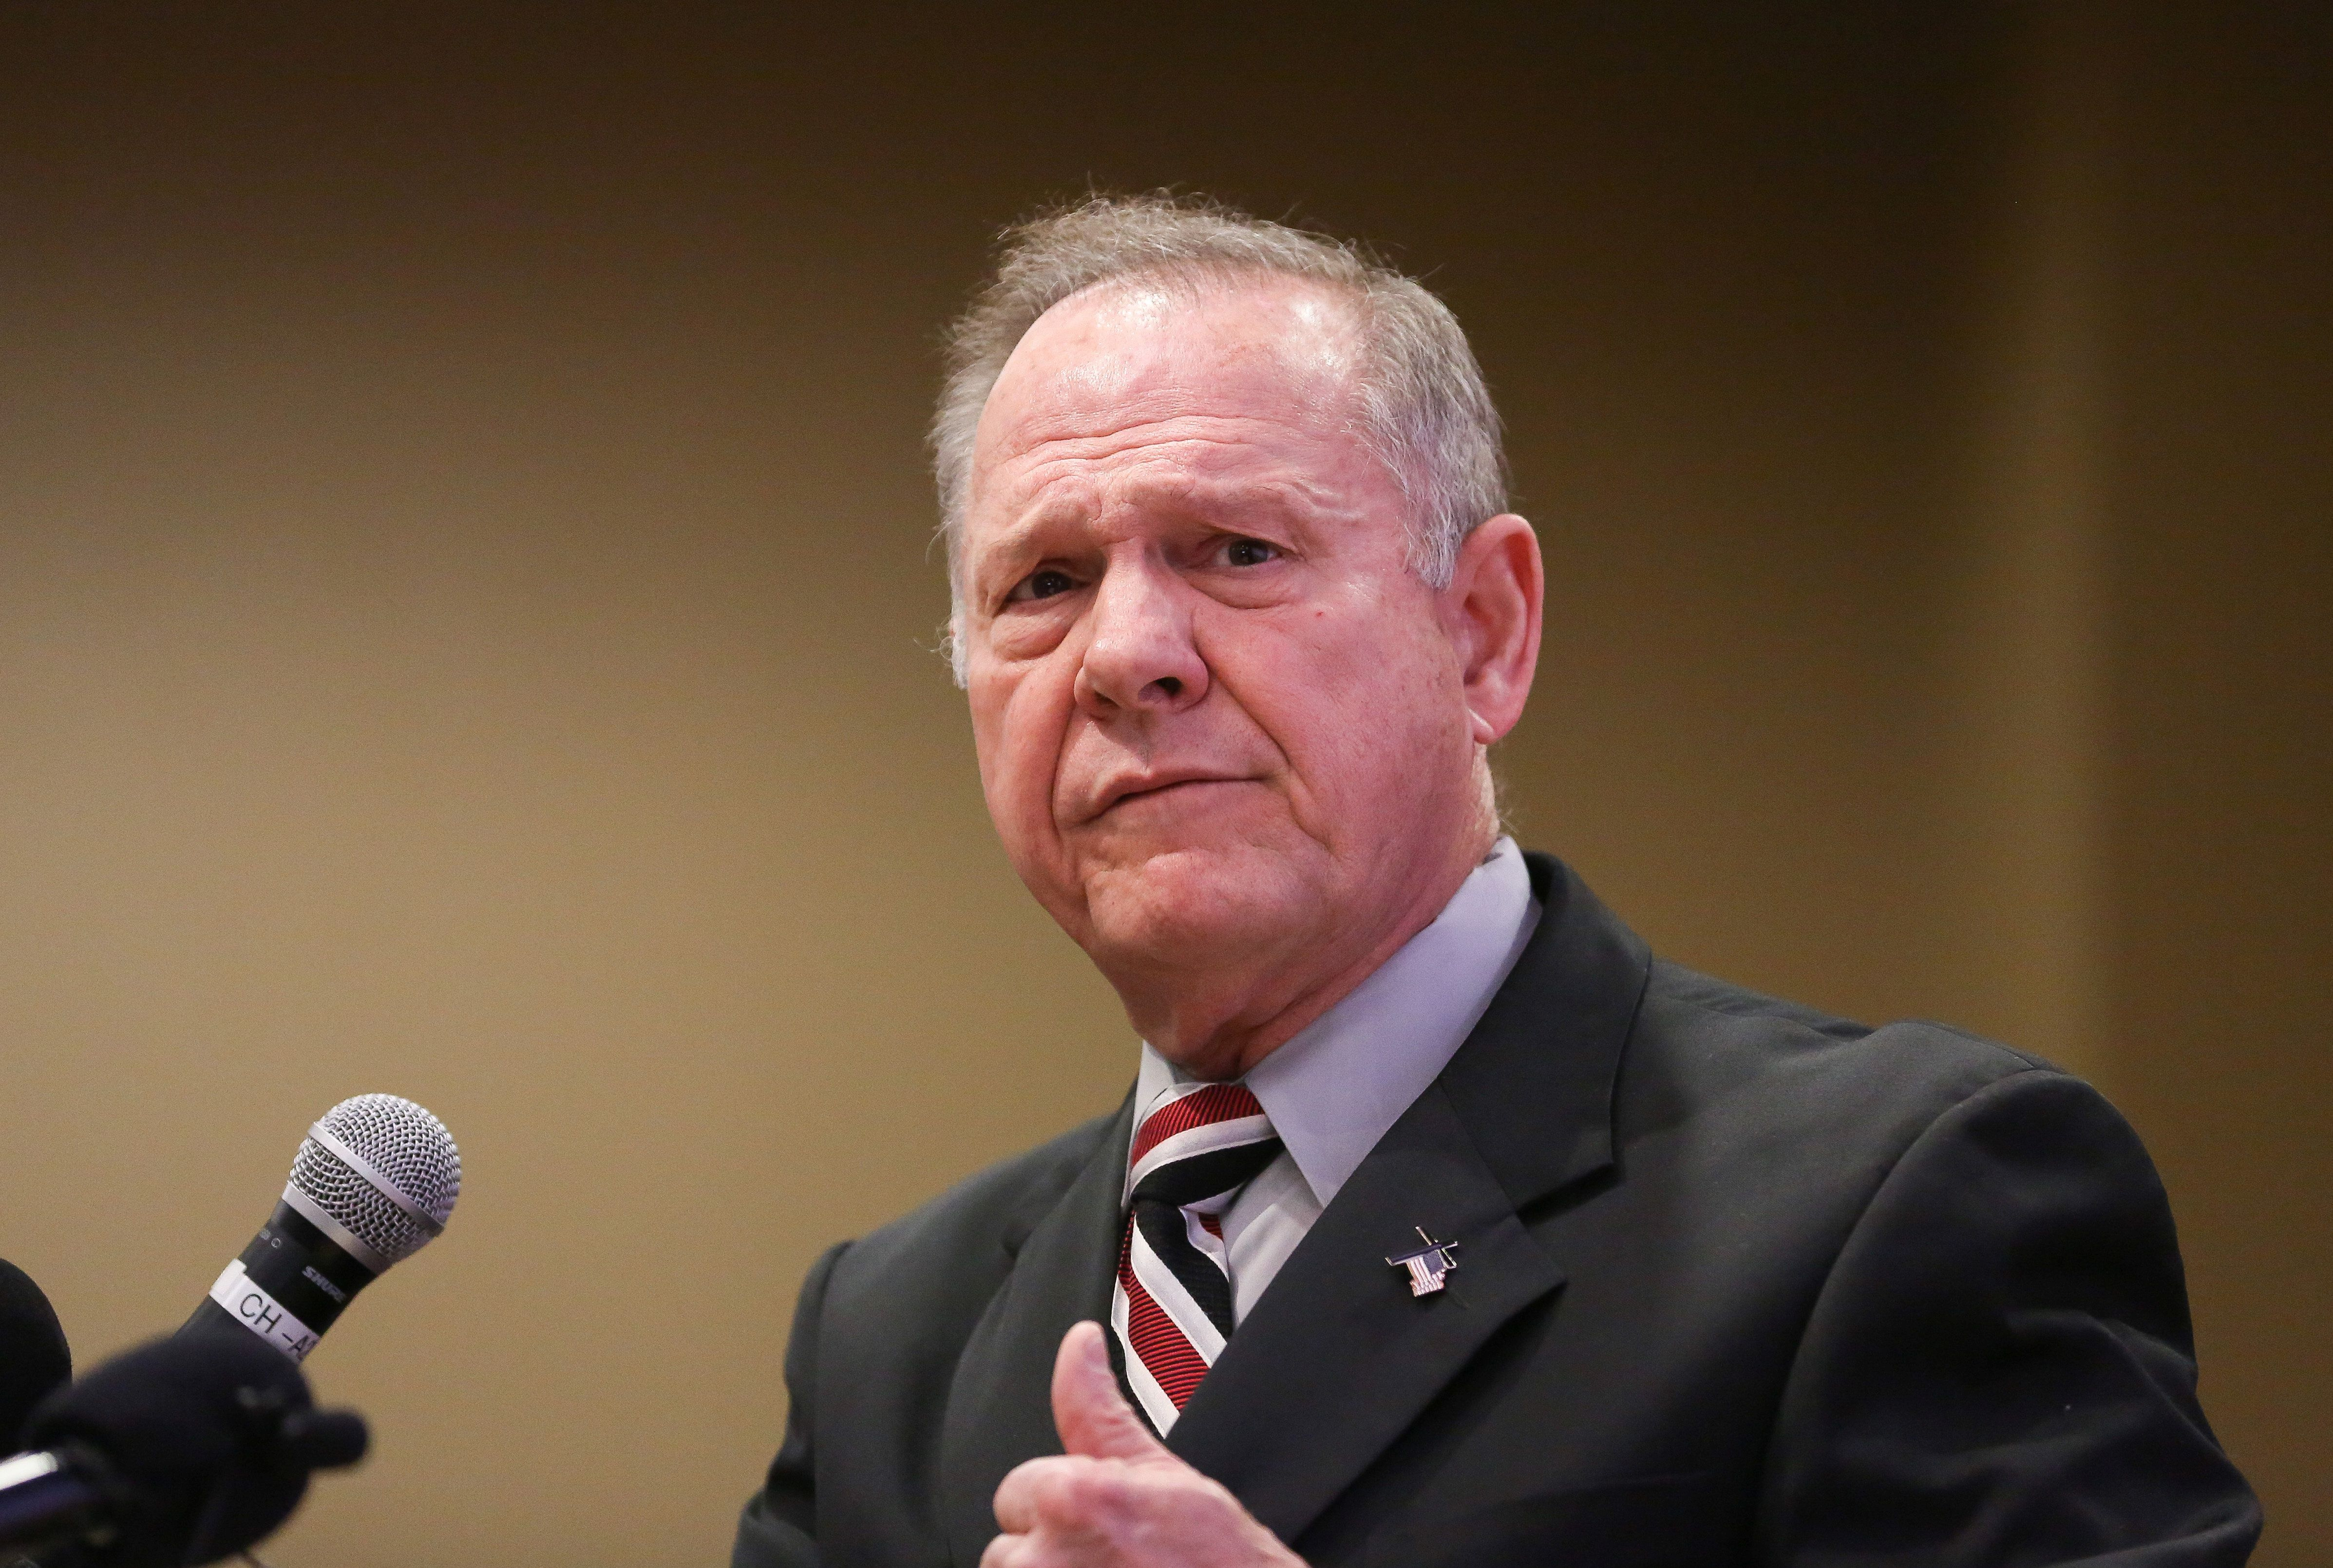 Judge Roy Moore participates in the Mid-Alabama Republican Club's Veterans Day Program in Vestavia Hills, Alabama, U.S., November 11, 2017. REUTERS/Marvin Gentry